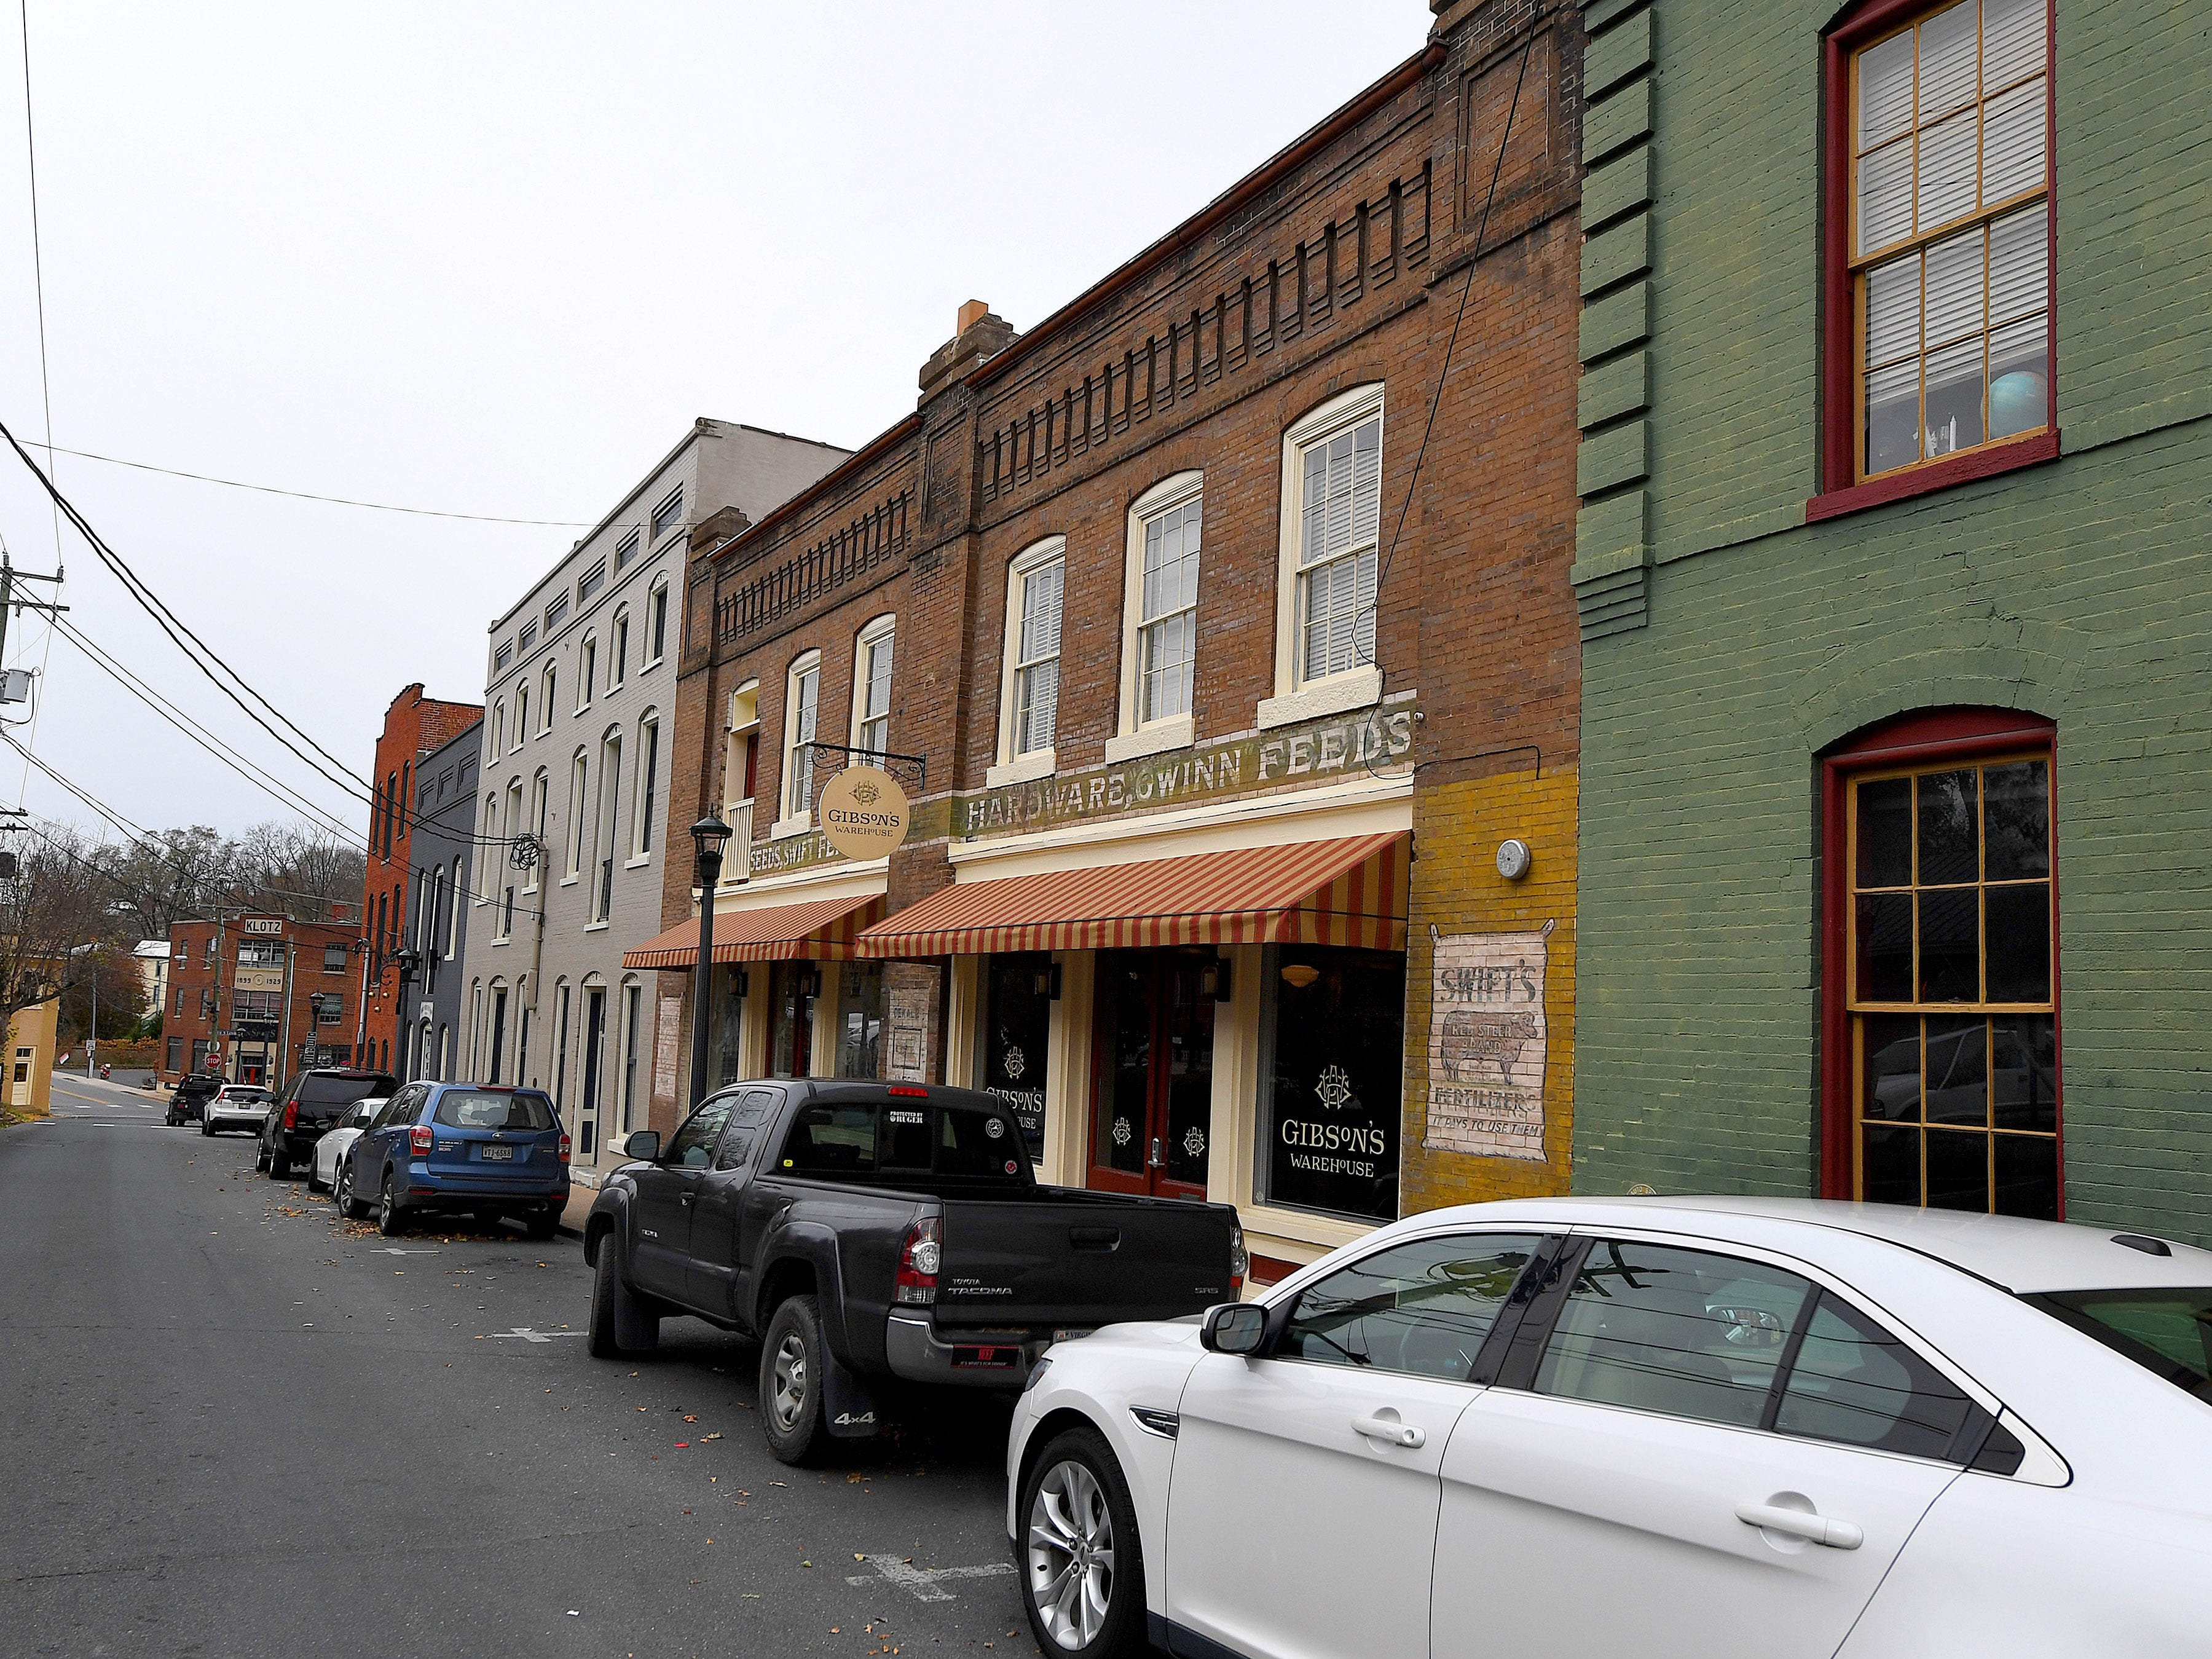 Gibson's Warehouse is a boutique hotel located on Middlebrook Avenue, across from the train station in Staunton.